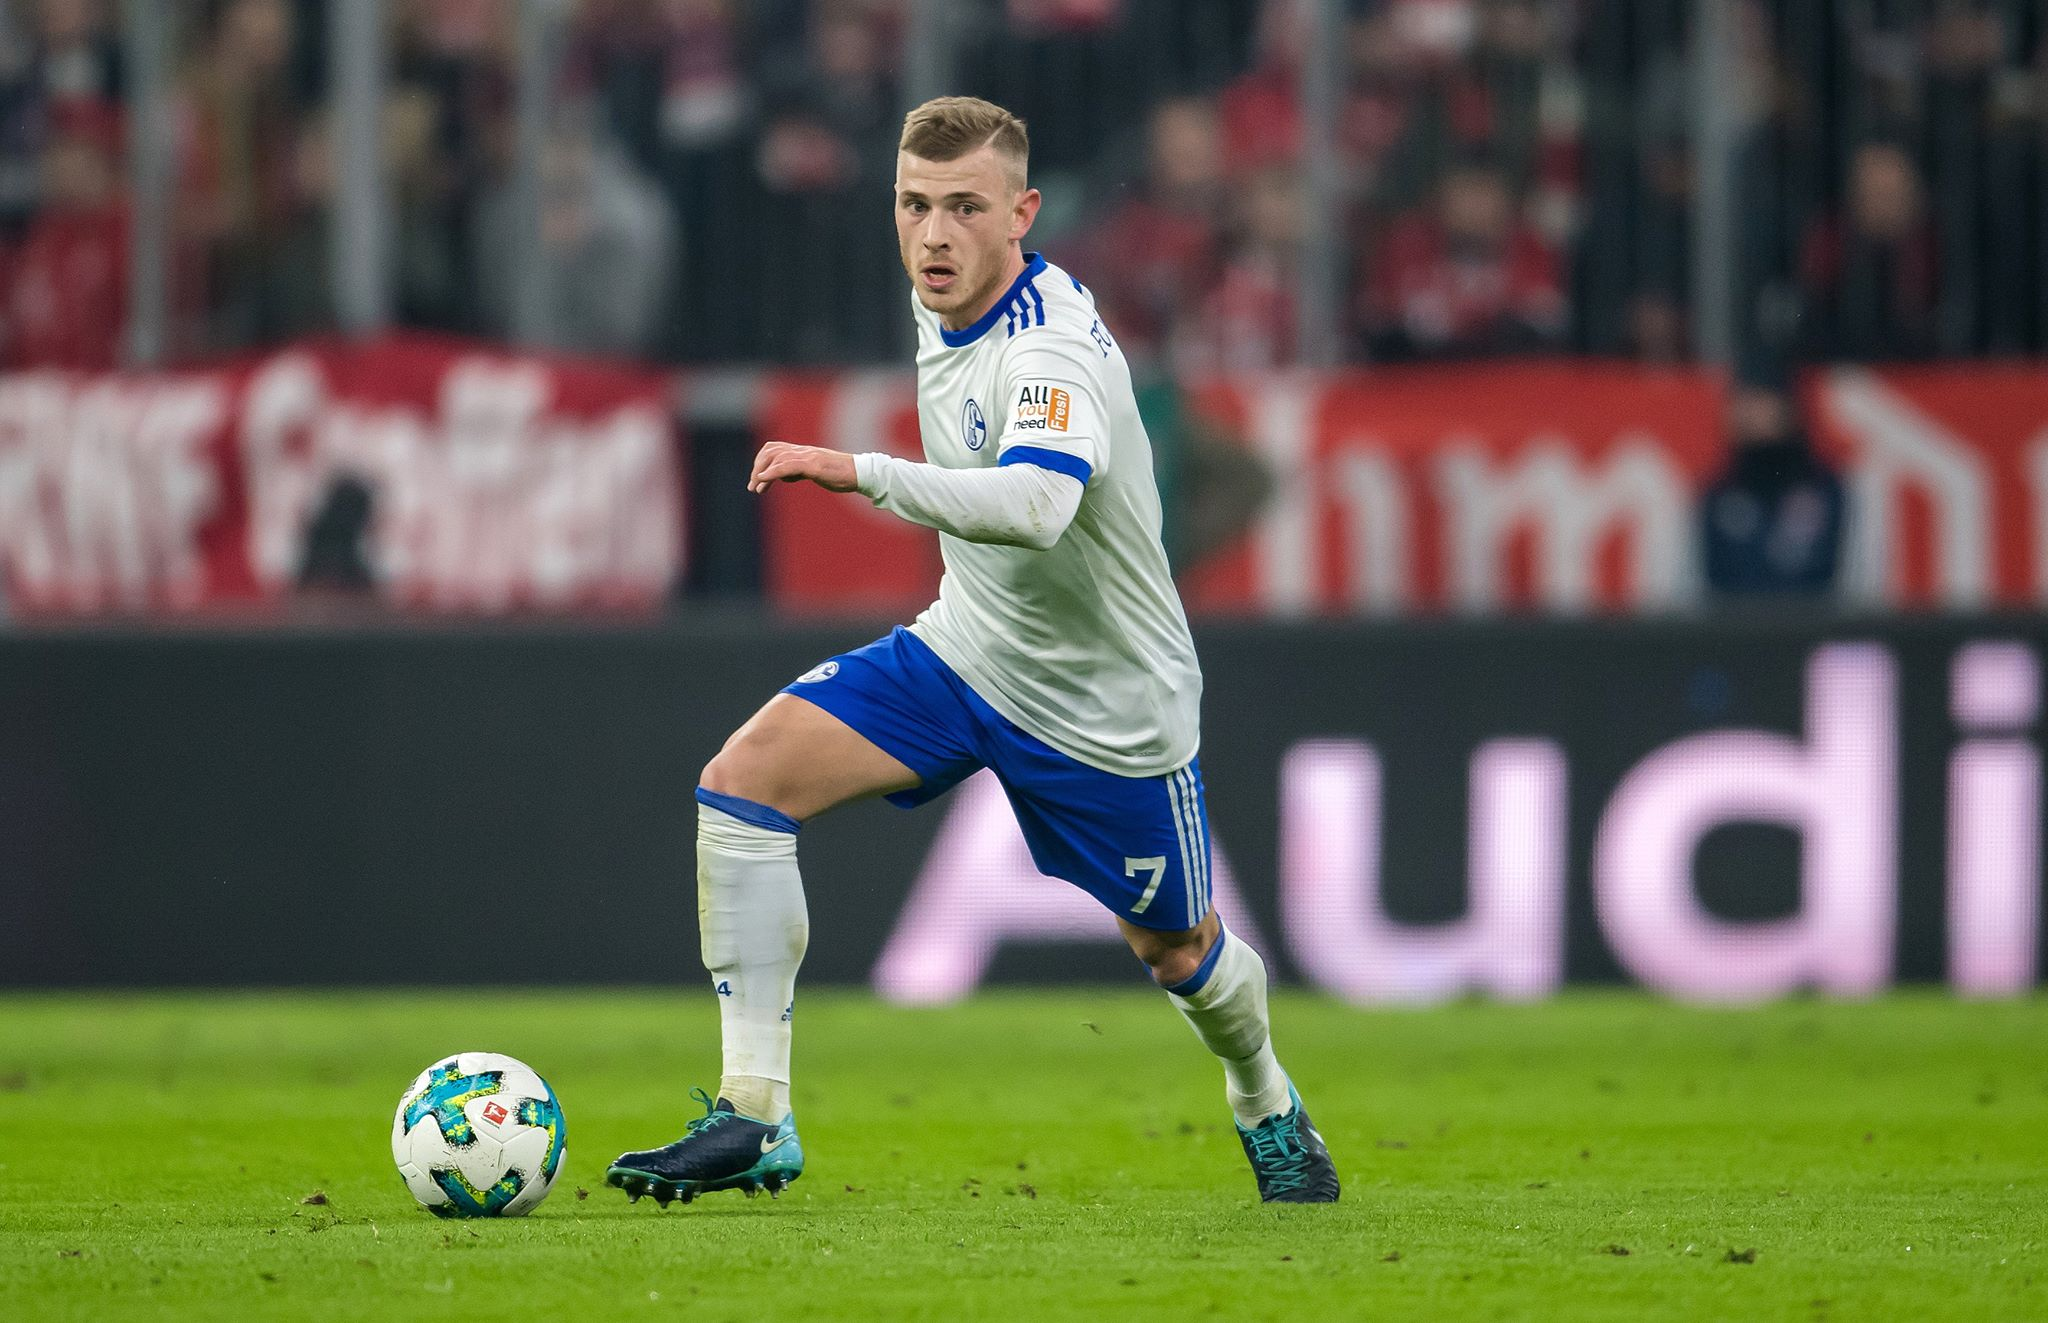 Schalke midfielder Max Meyer latest player to leave for free